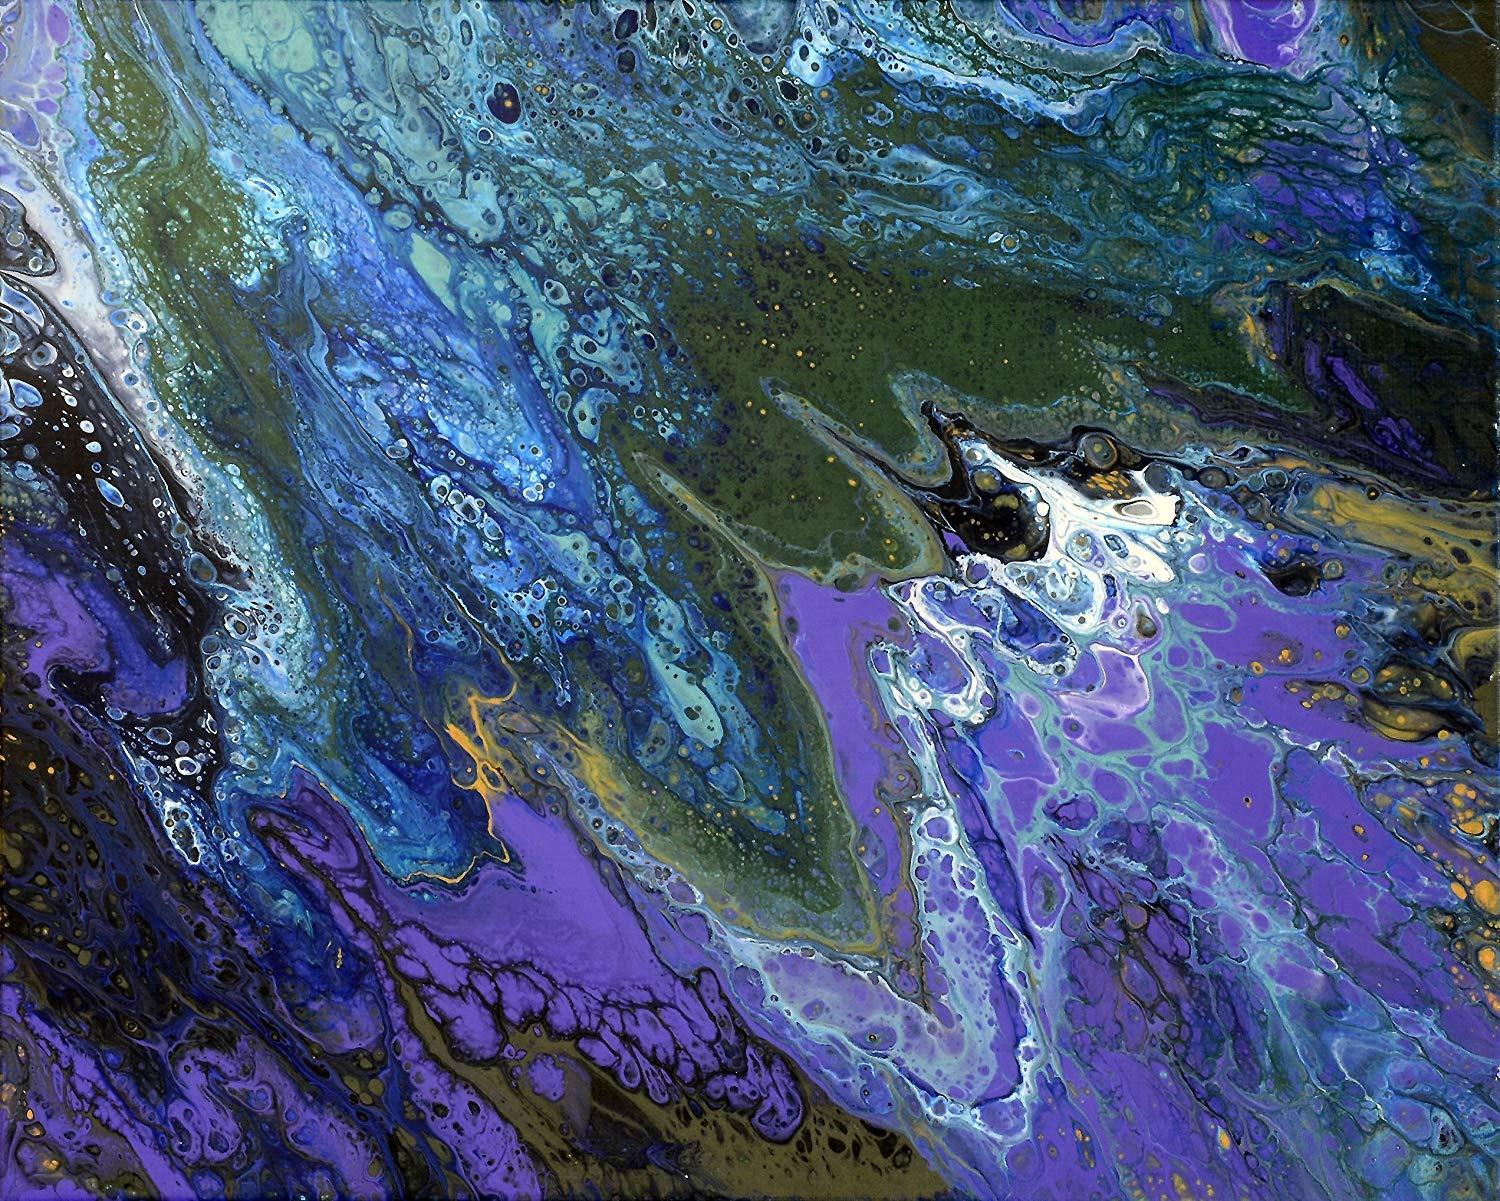 Summer deluge 1. Acrylic Painting on stretched canvas. No frame.